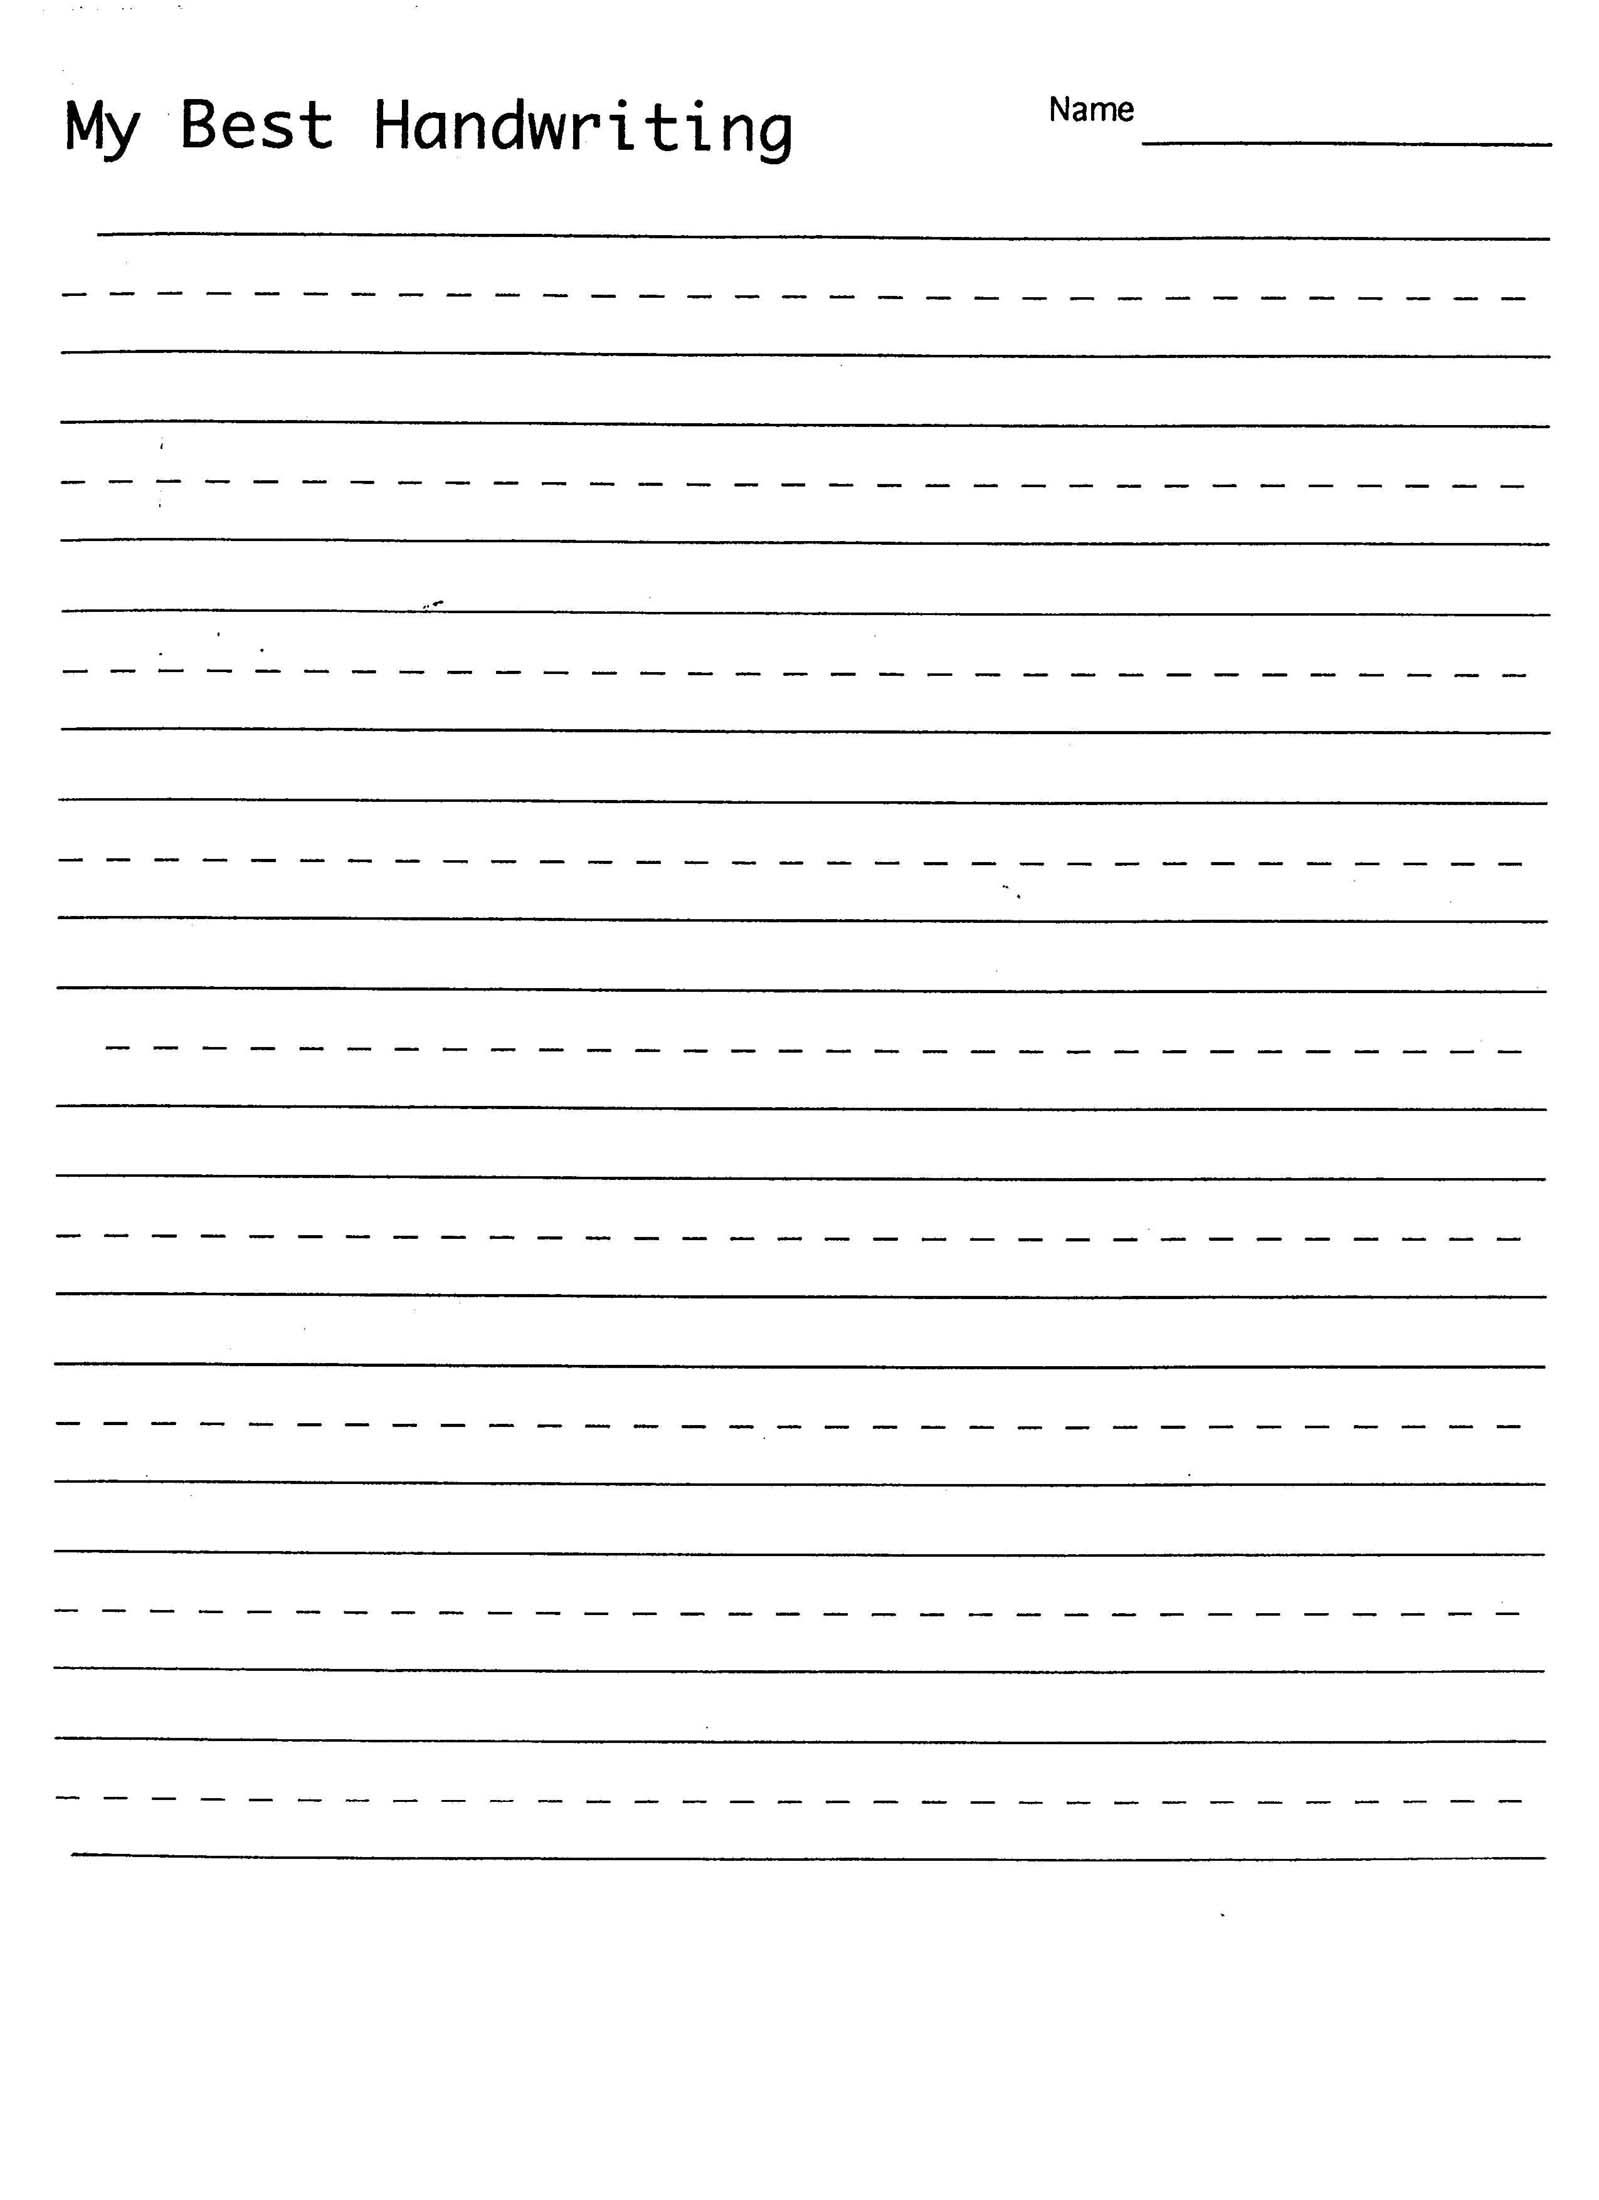 Worksheets Printing Practice Worksheet handwriting practice sheet child education pinterest sheet